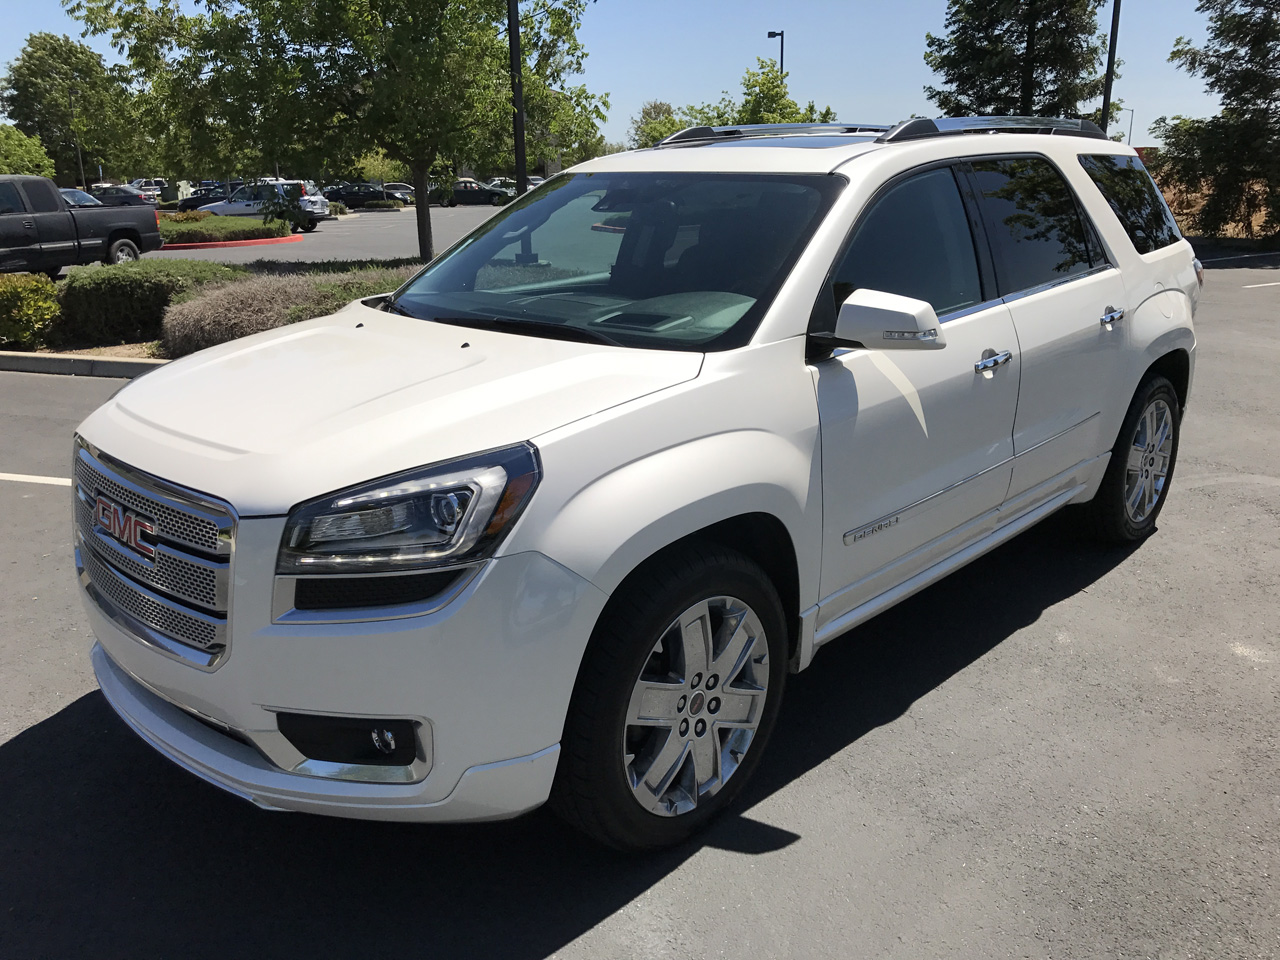 2015 gmc acadia denali sport utility 4 door ebay. Black Bedroom Furniture Sets. Home Design Ideas